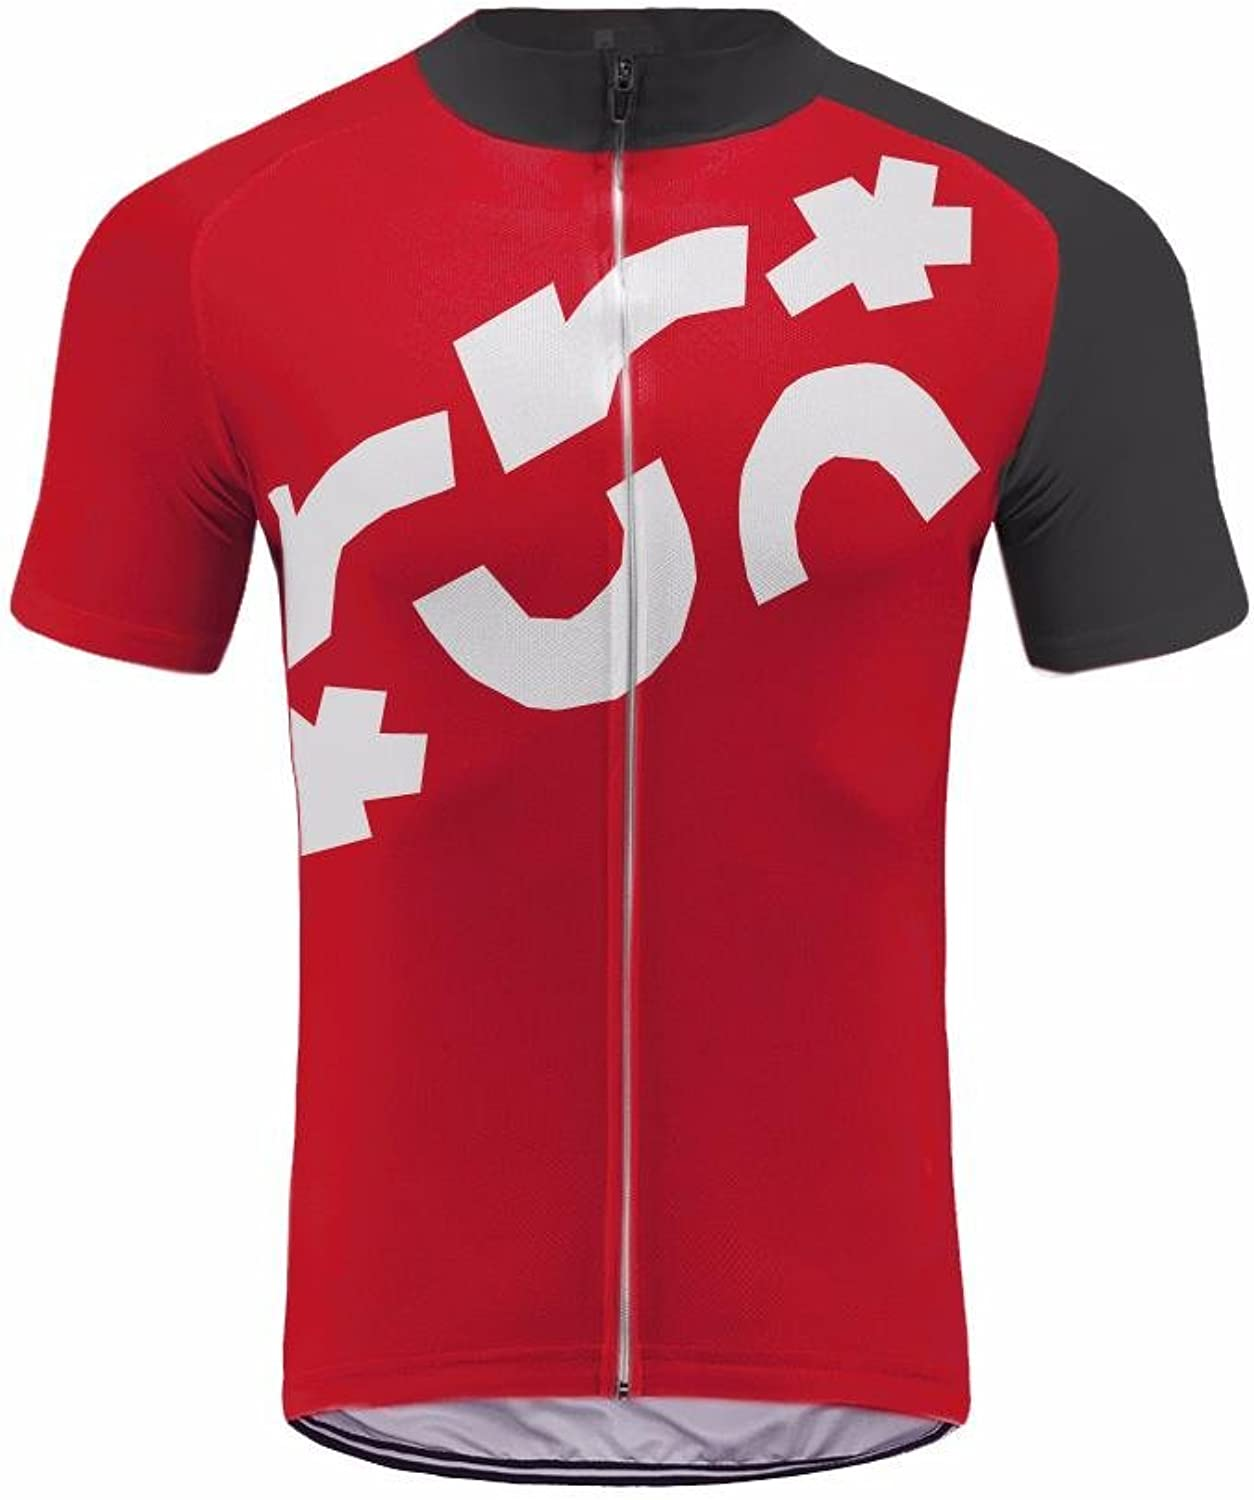 Uglyfrog Summer Classic Cycling Jersey for Men Bike Clothes a Log of Choices Gift for Boy